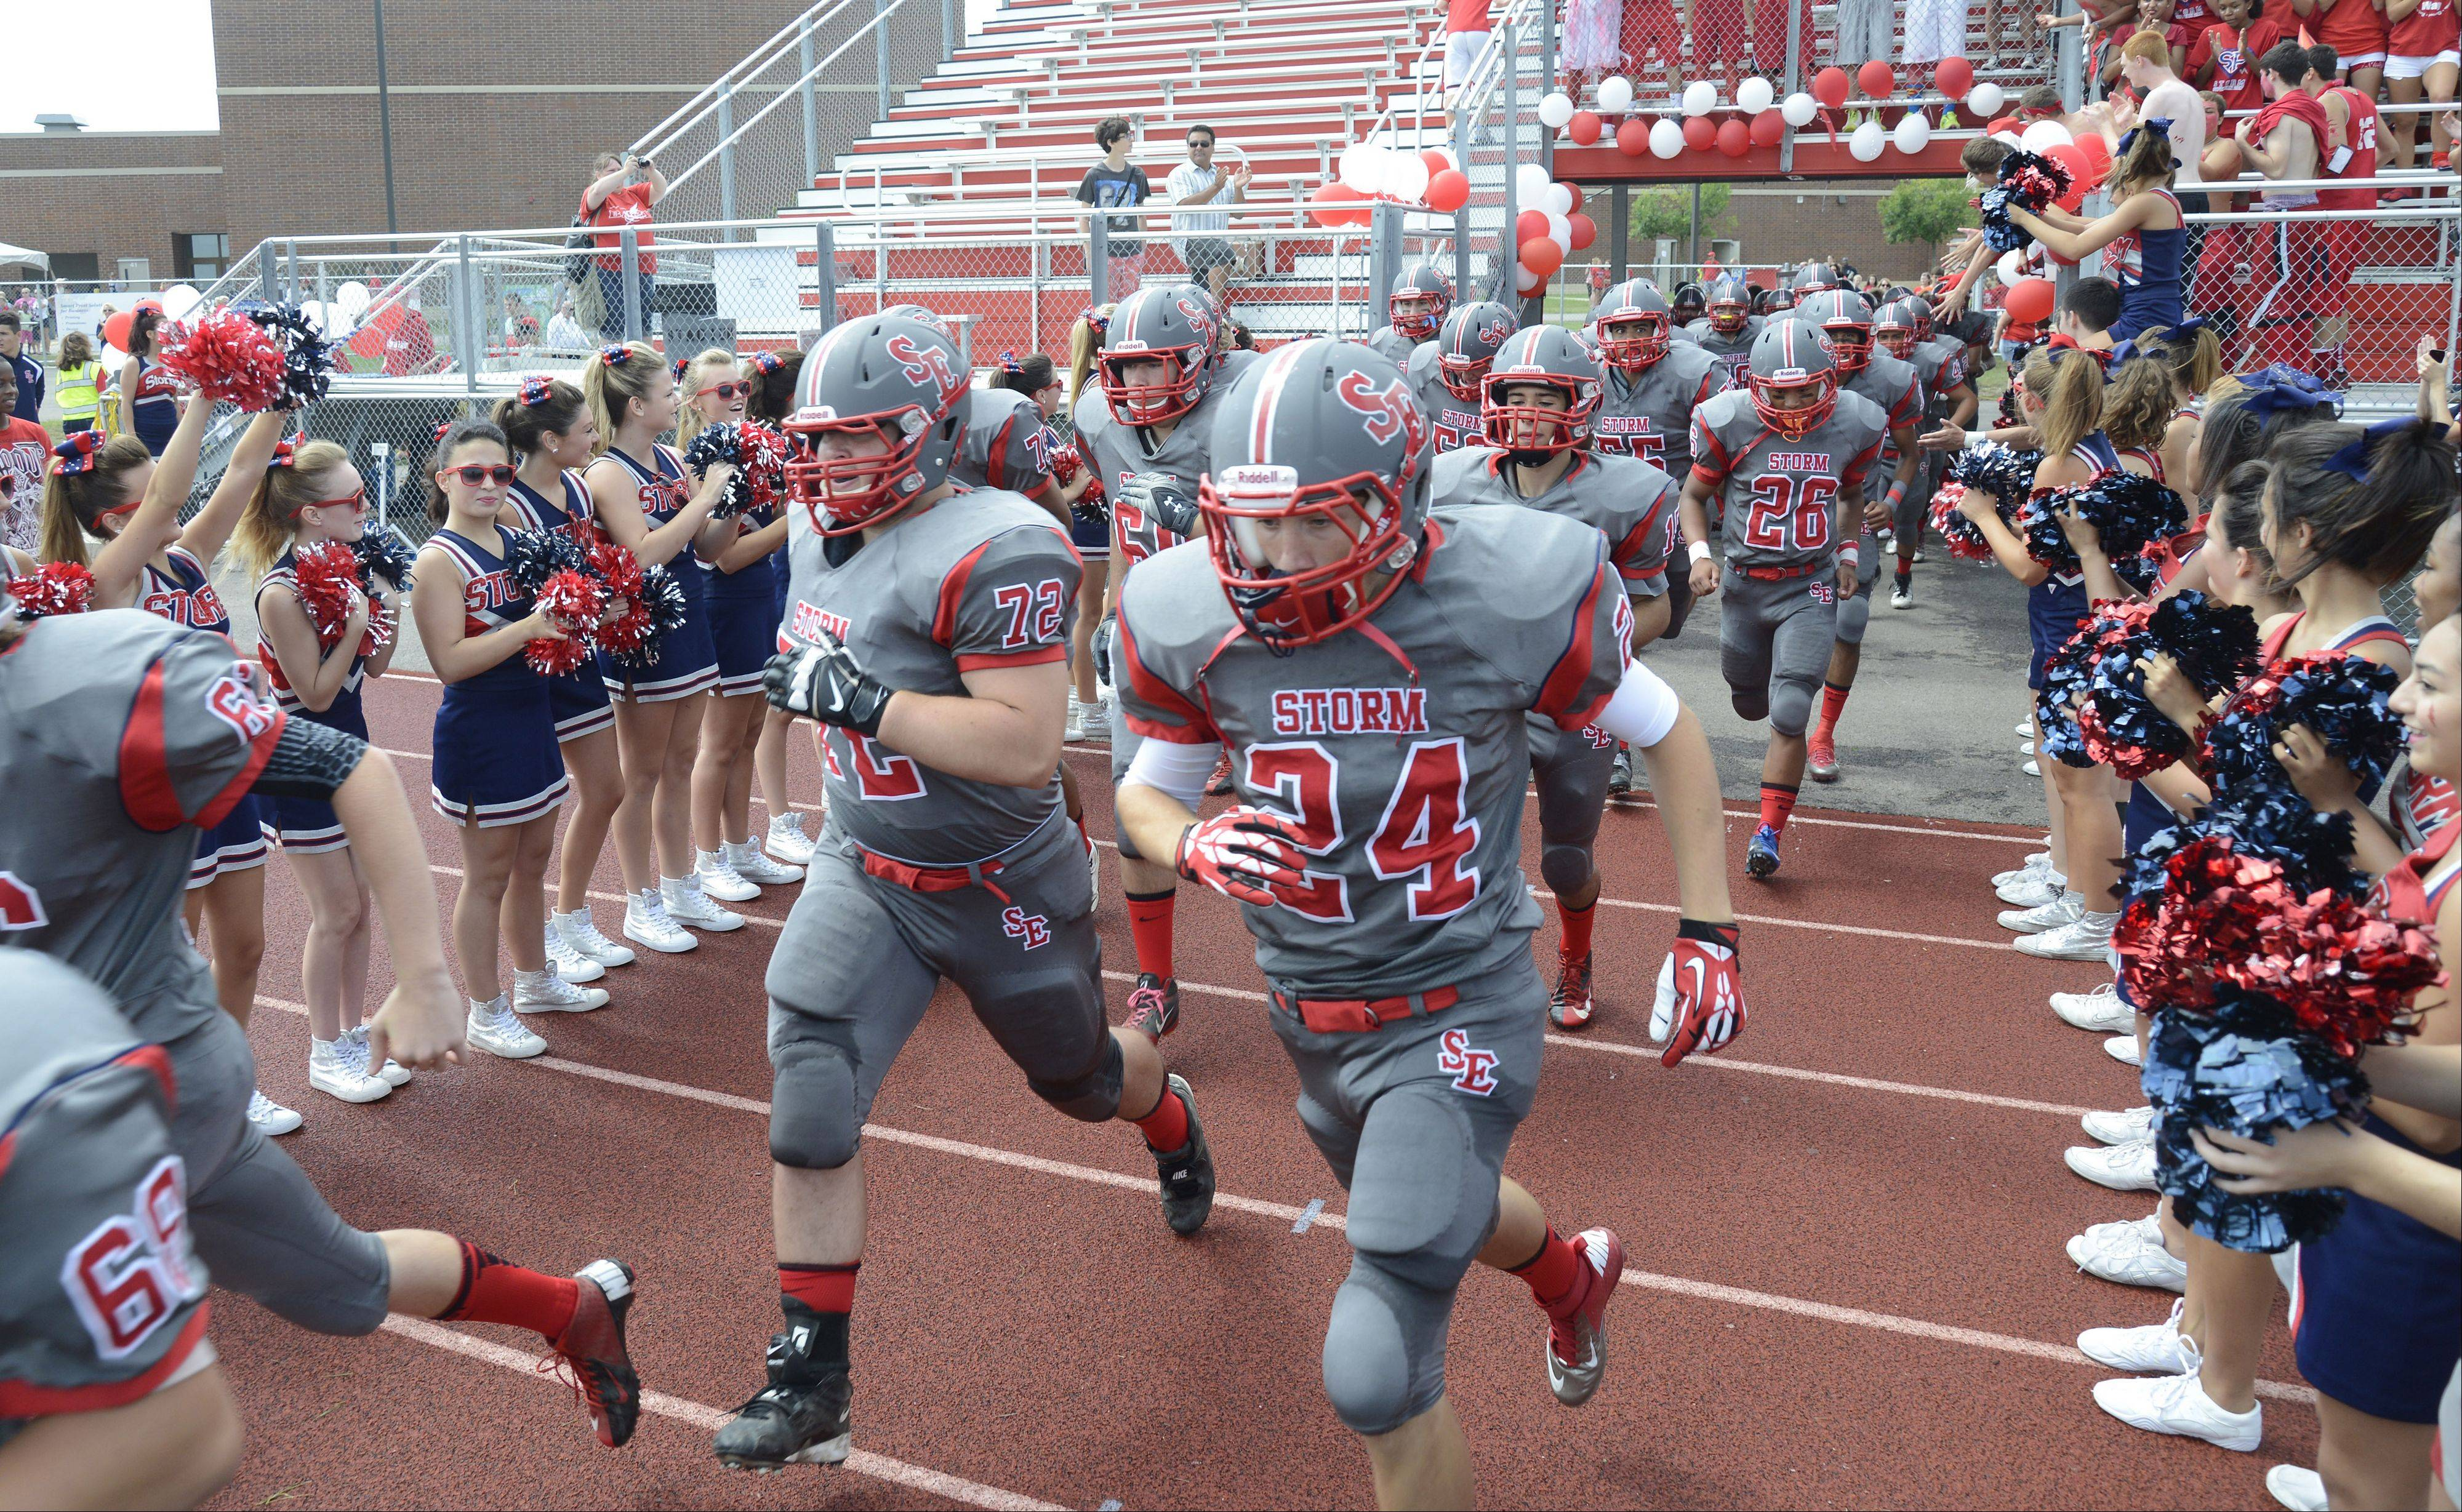 South Elgin seniors Alex Pierscionek, left, and Alec Barclay take to the field for the start of the game vs. St. Charles East on Saturday, August 31.